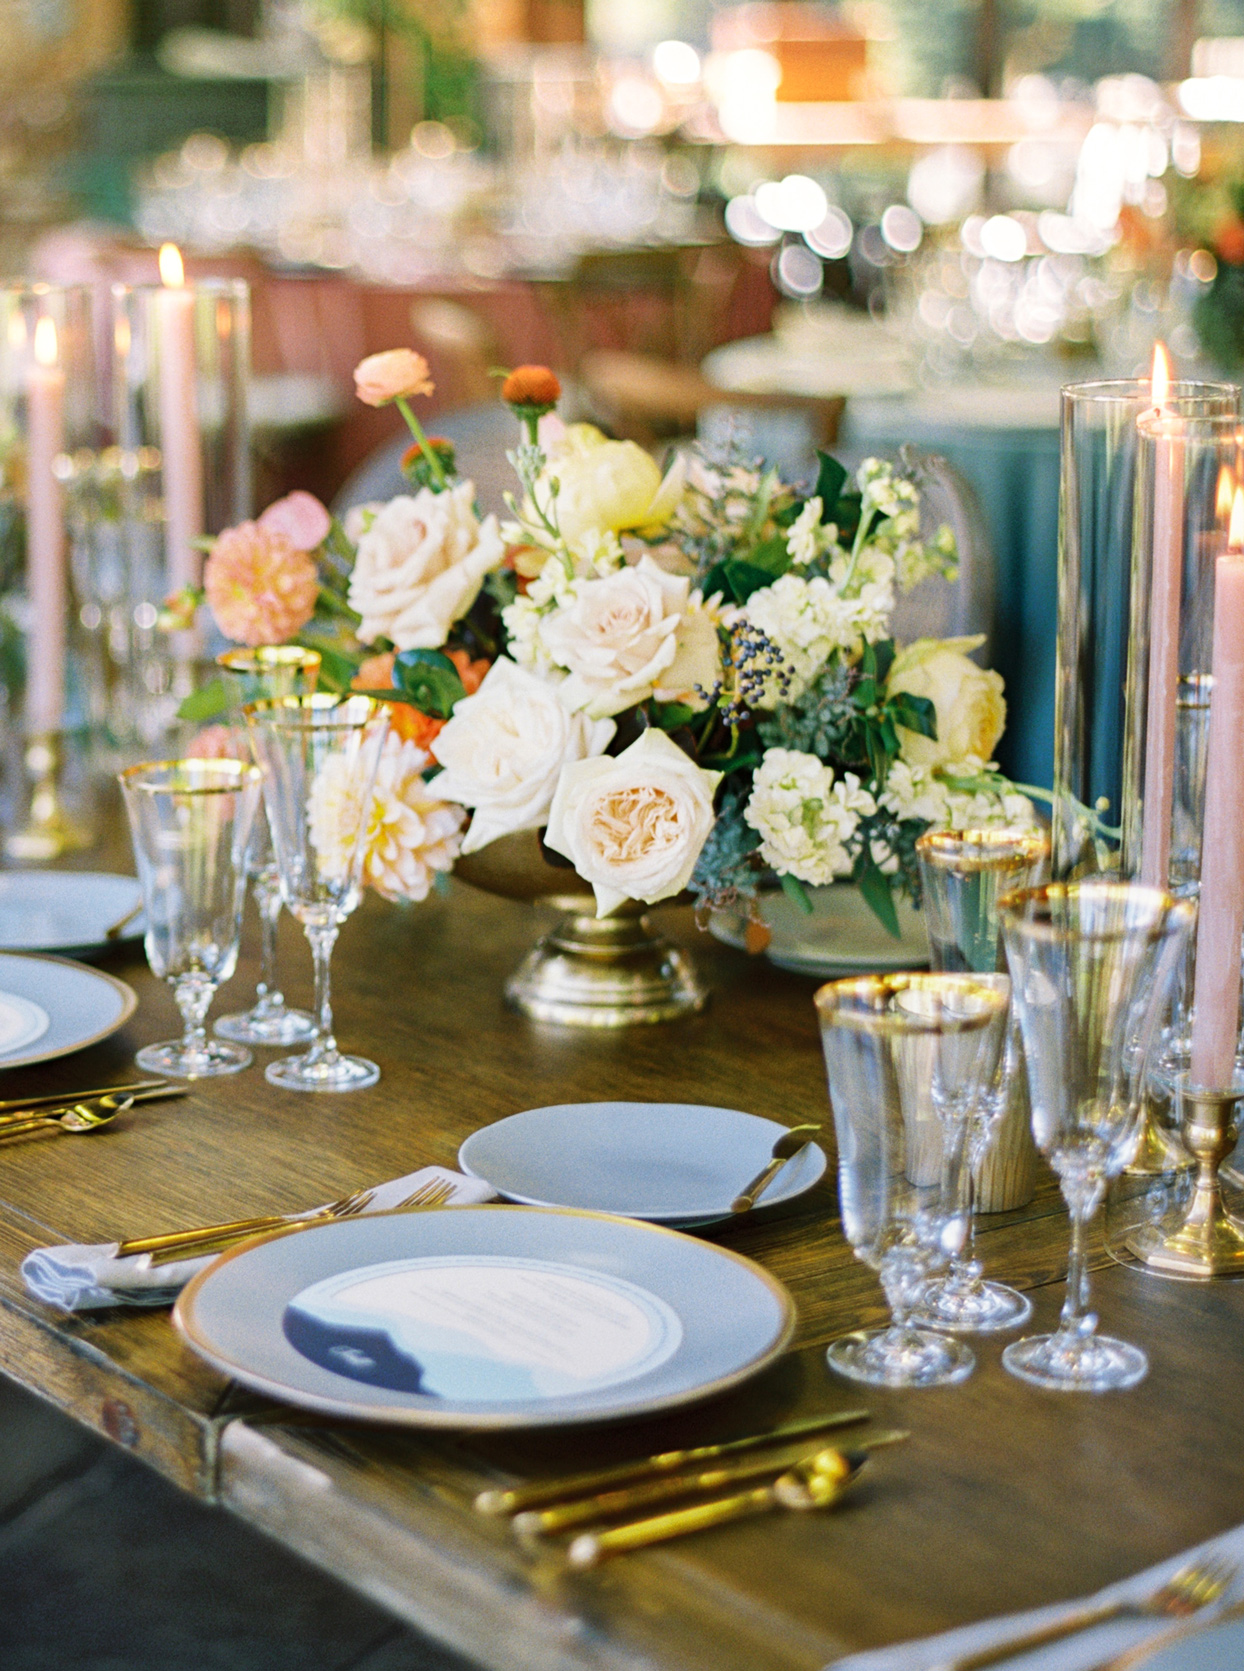 Wooden tables with metallic urns filled with flowers